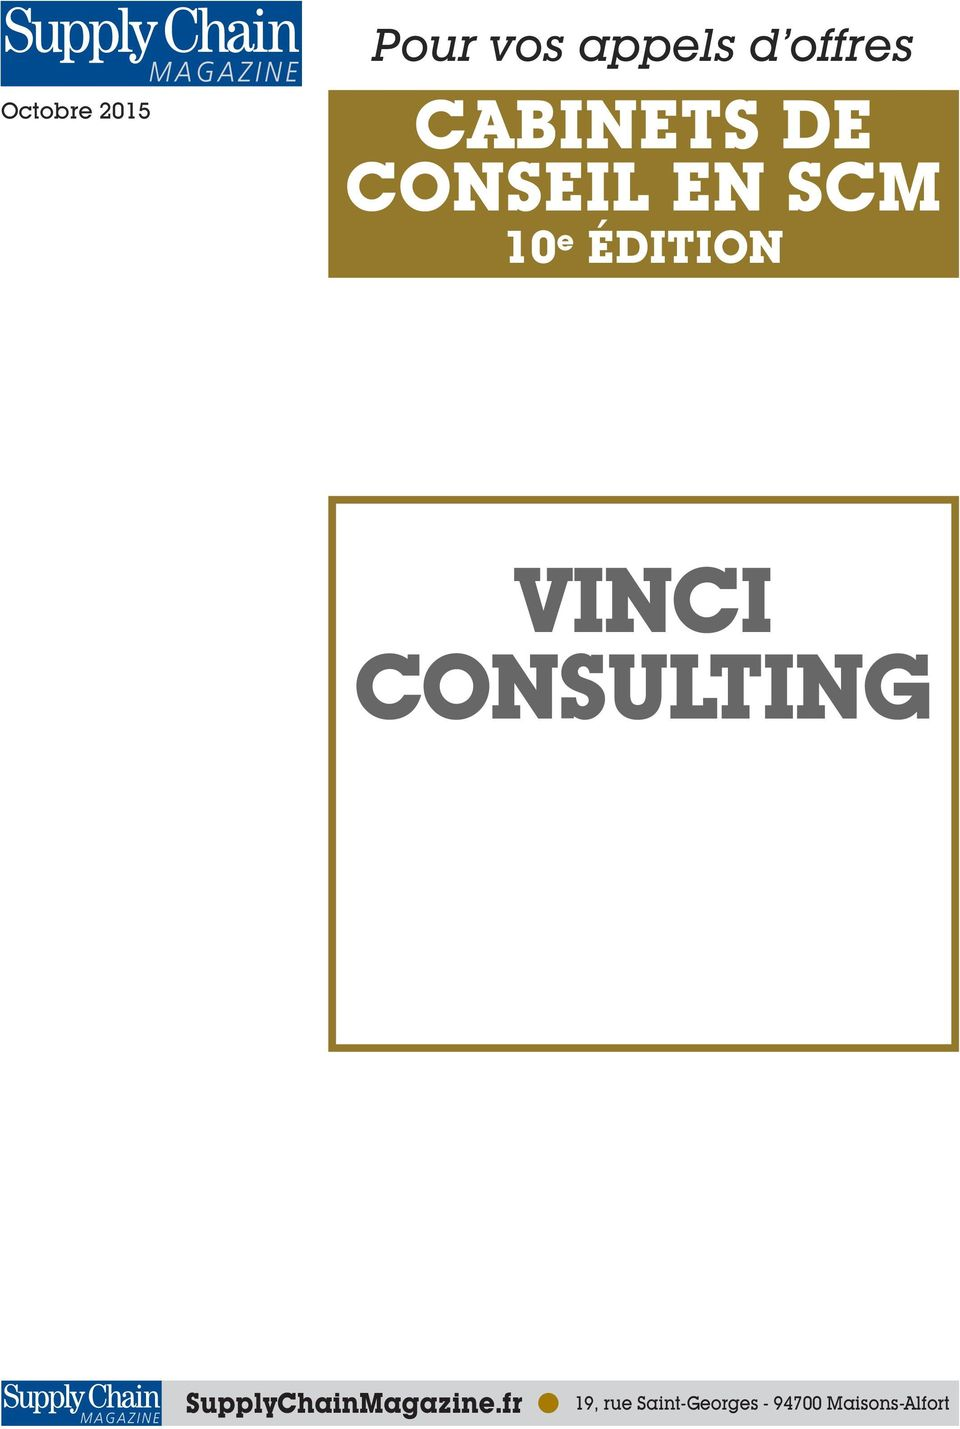 VINCI CONSULTING SupplyChainMagazine.